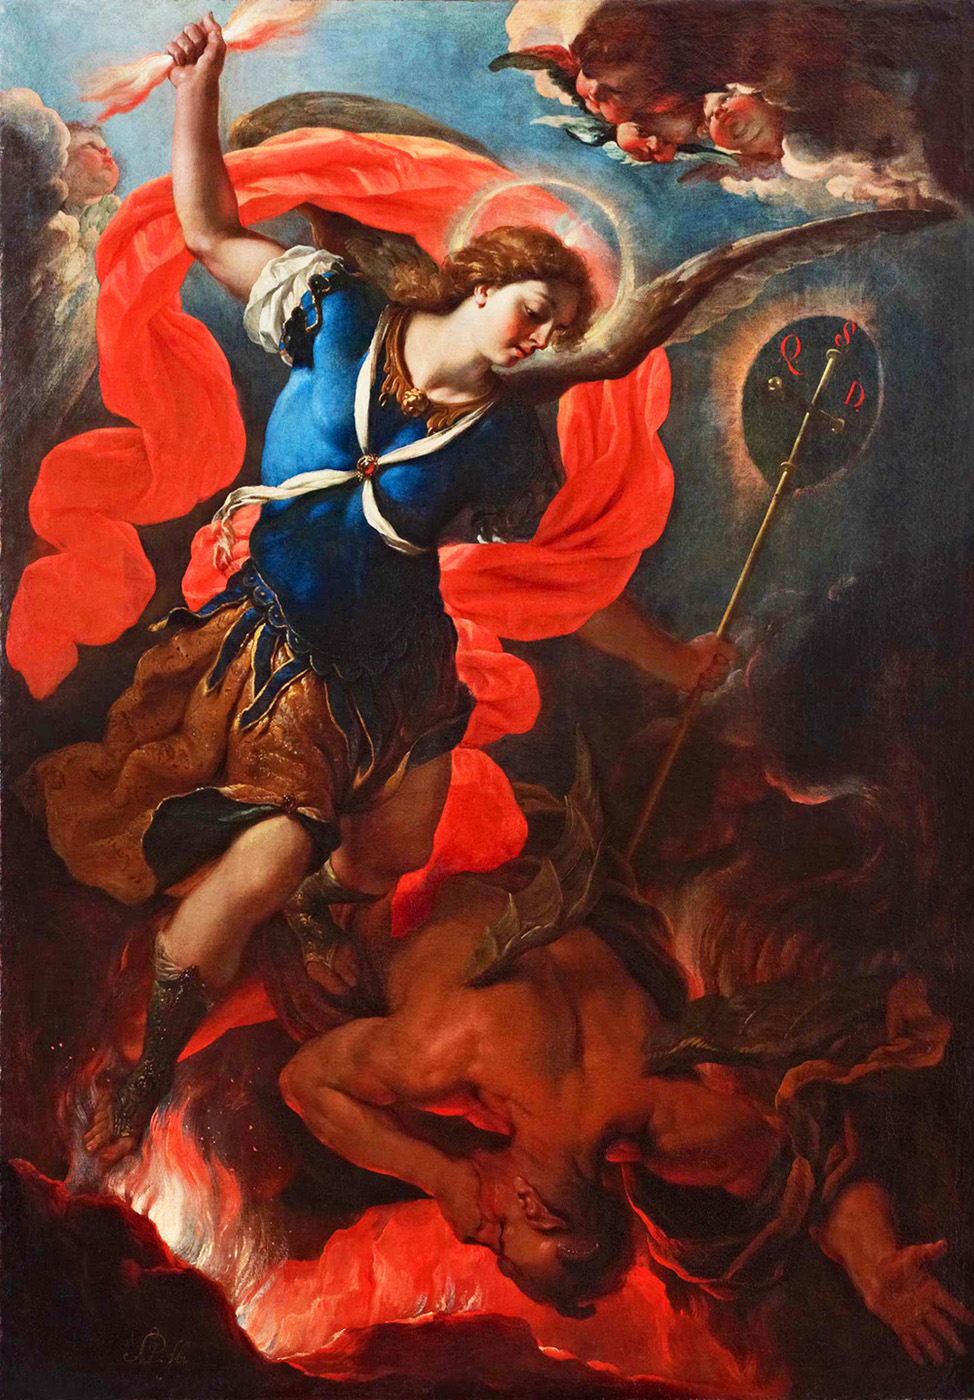 saint michael vanquishing the devil